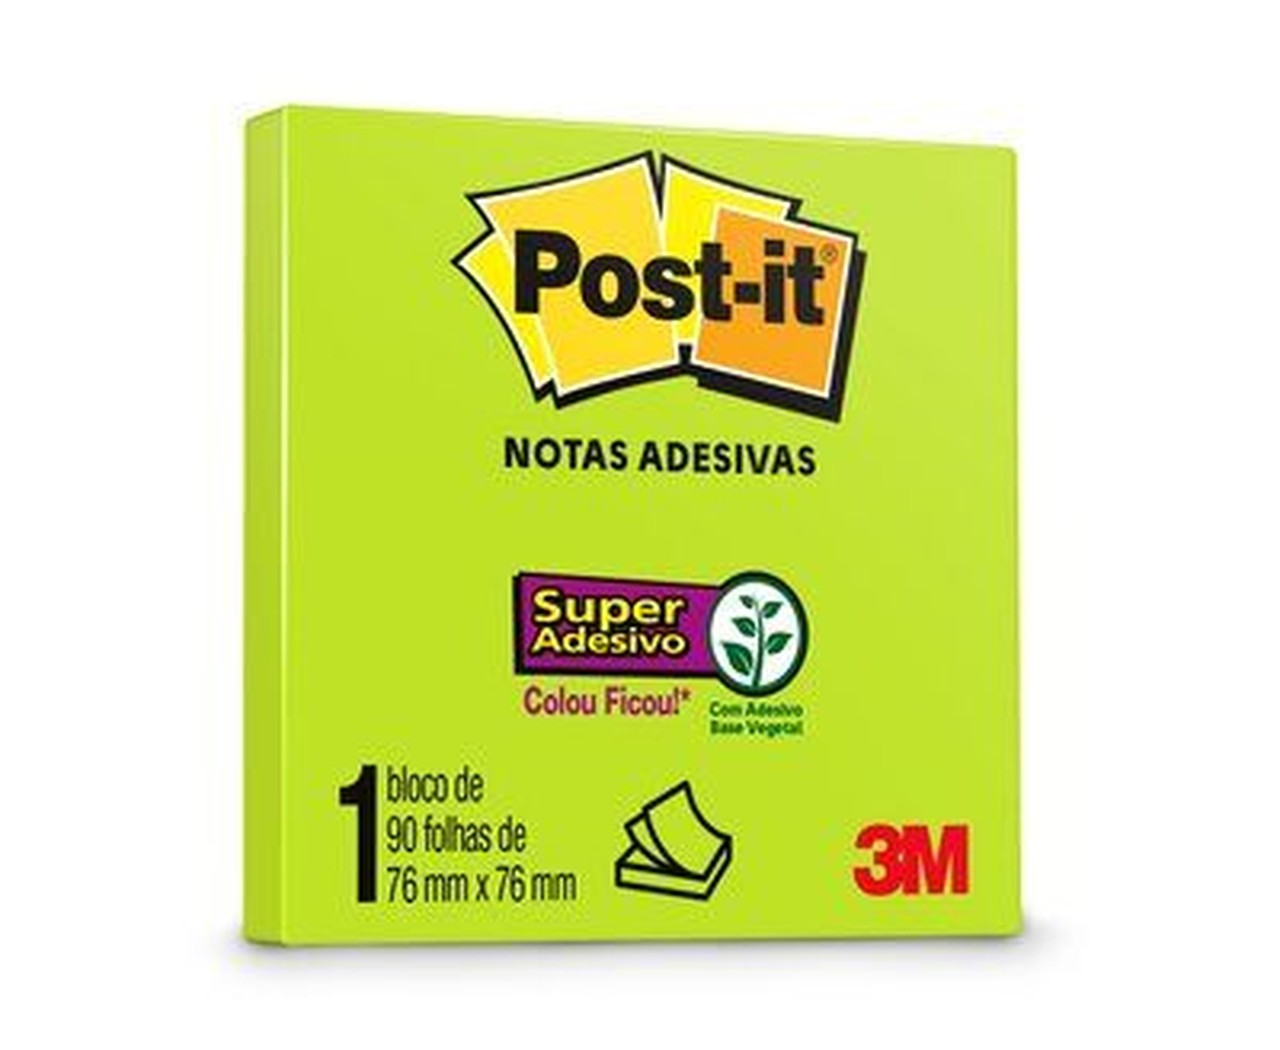 Bloco de Notas Super Adesivas Post-it® Verde Neon 76 mm x 76 mm - 90 folhas